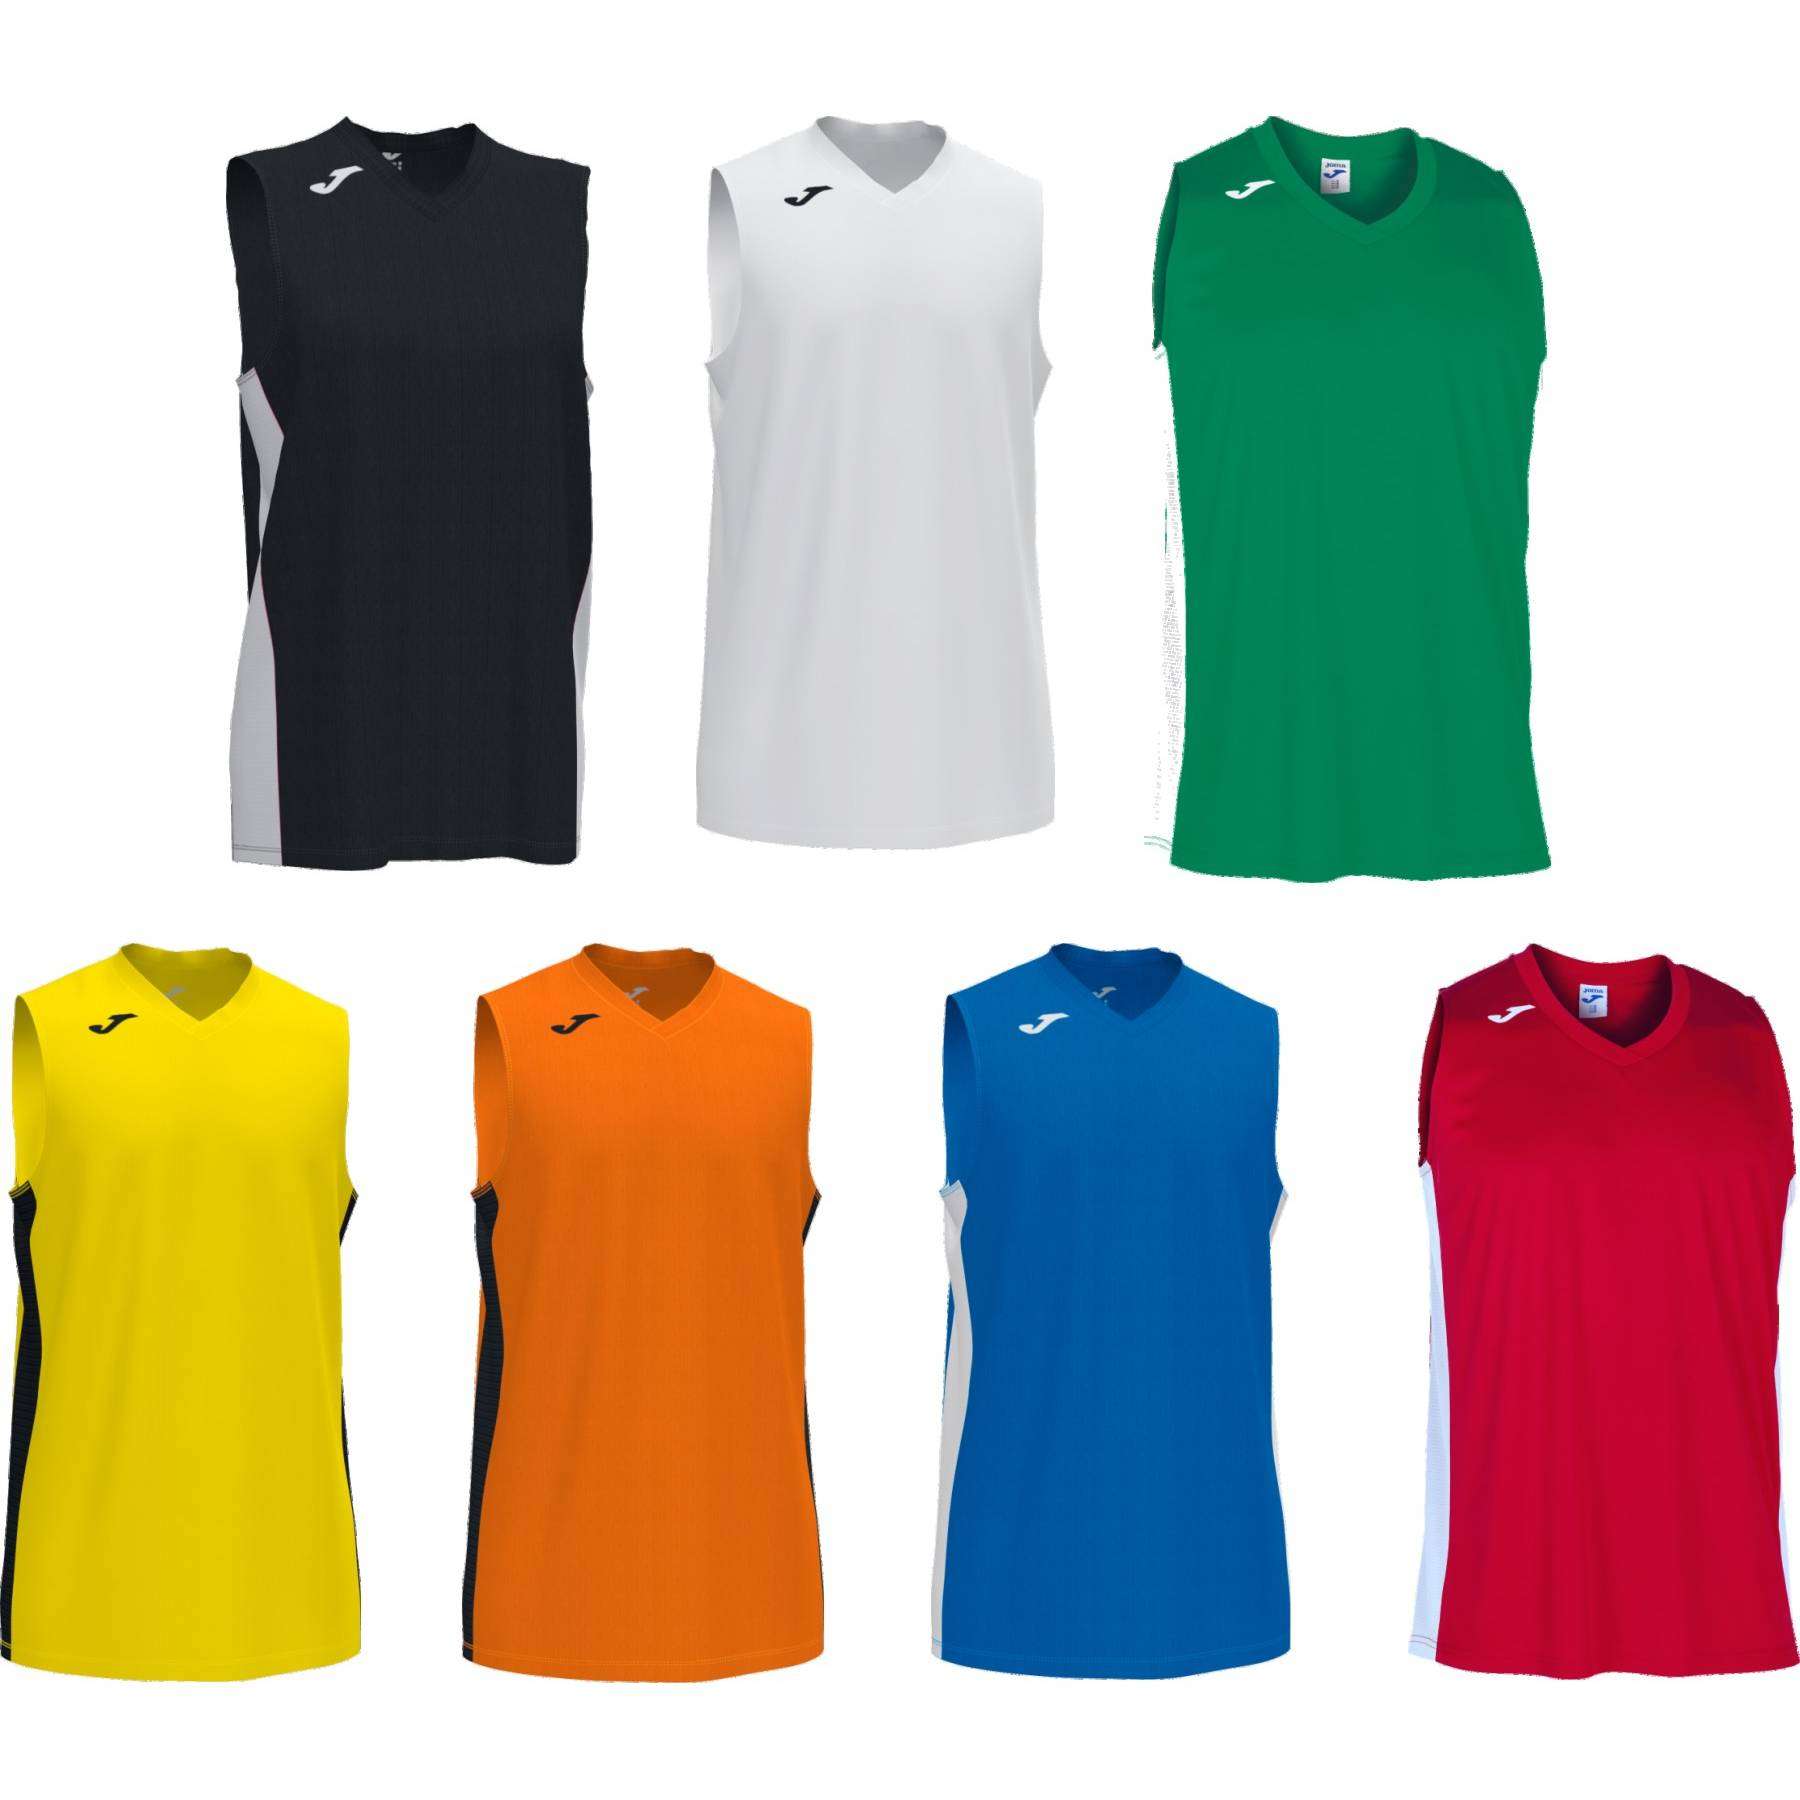 Teamwear - Joma Cancha III Sleeveless